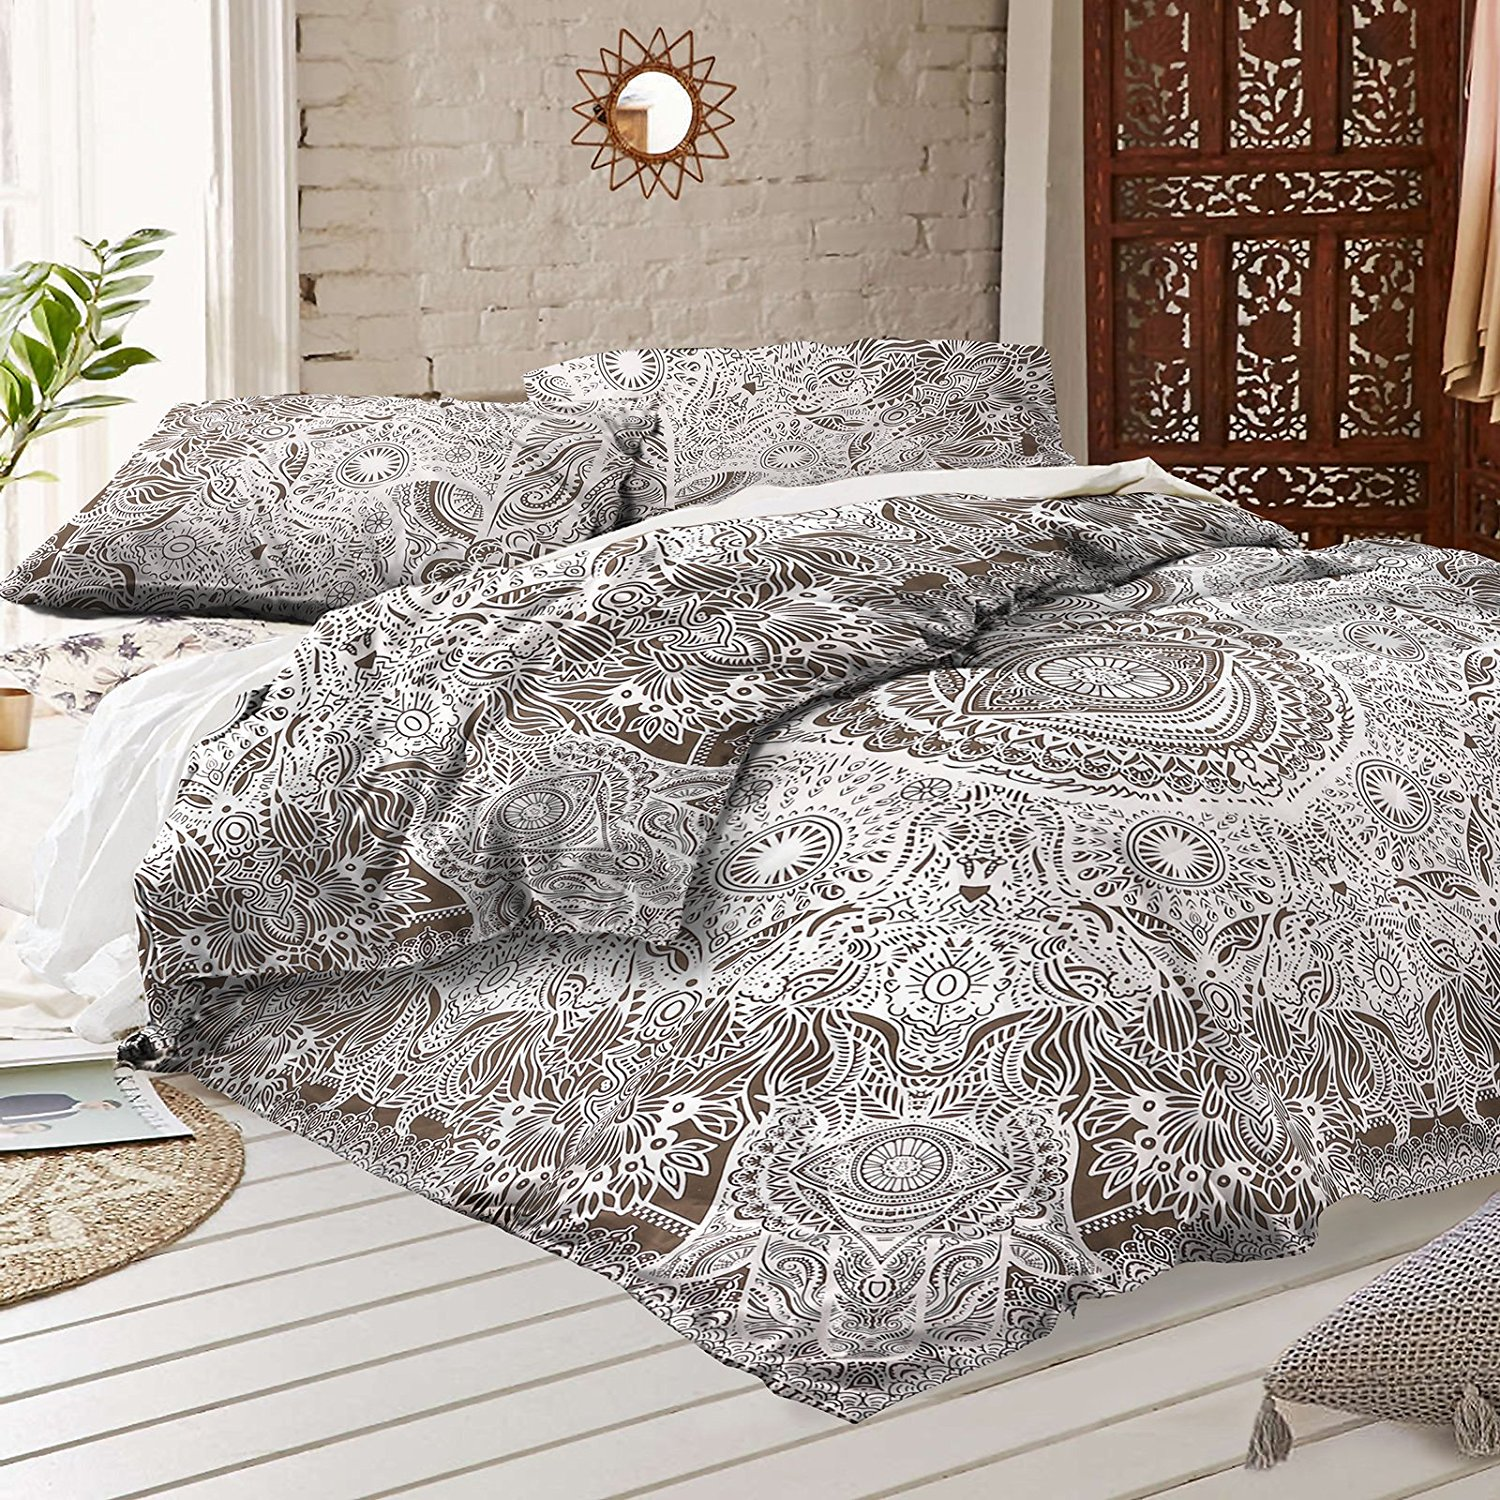 collections design kinge set setbohemian lelva luxurybohemian care duvet full size aria picture julian bohemian reversible unforgettable king twin california coral quilt uk mandala comforter bedding flannel easy charles of